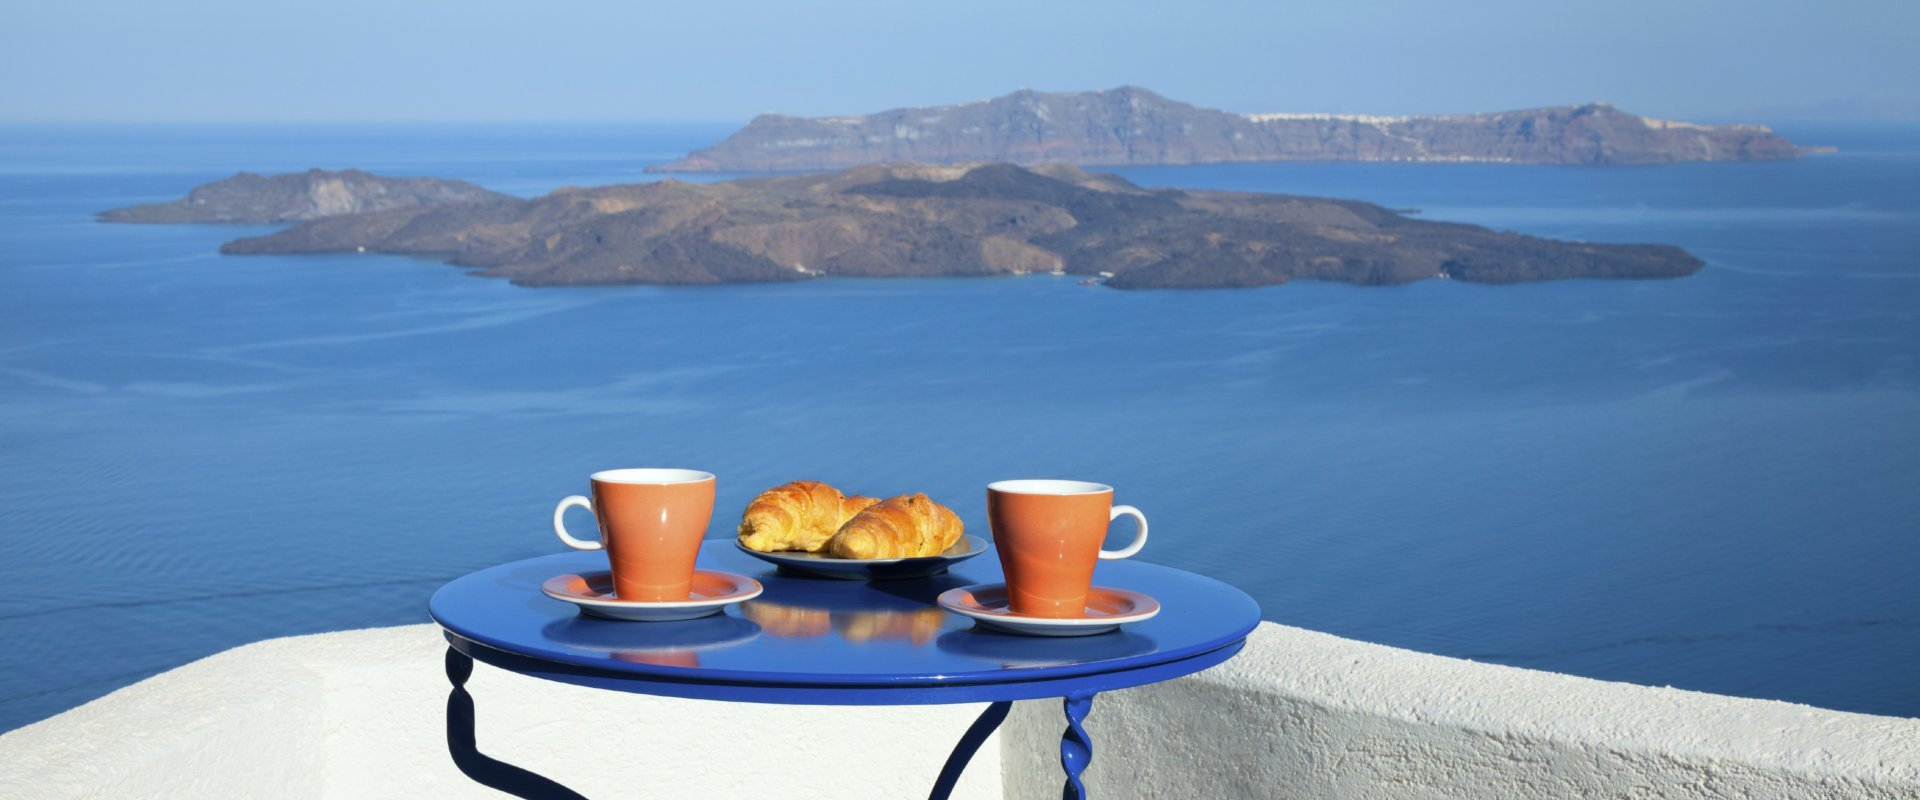 Breakfast with seaview and Caldera view.